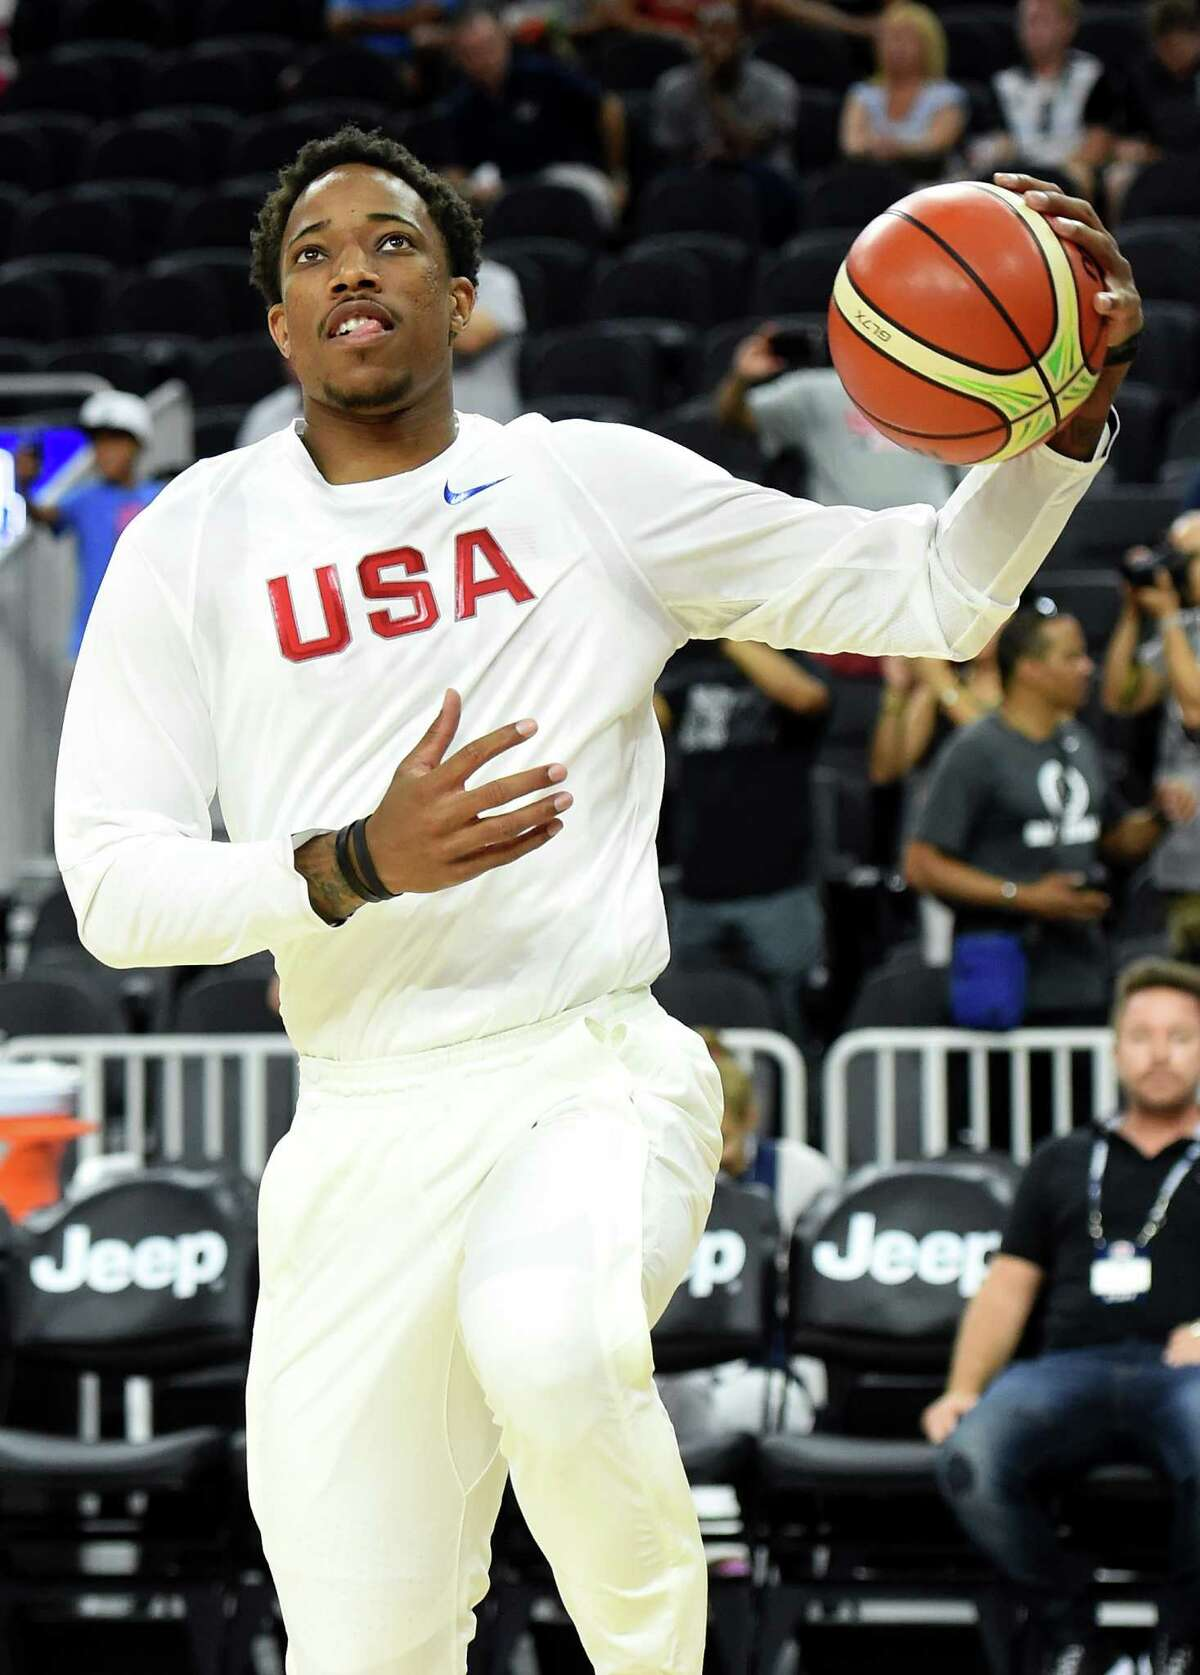 LAS VEGAS, NV - JULY 22: DeMar DeRozan #9 of the United States shoots a layup during warmups before a USA Basketball showcase exhibition game against Argentina at T-Mobile Arena on July 22, 2016 in Las Vegas, Nevada. The United States won 111-74.